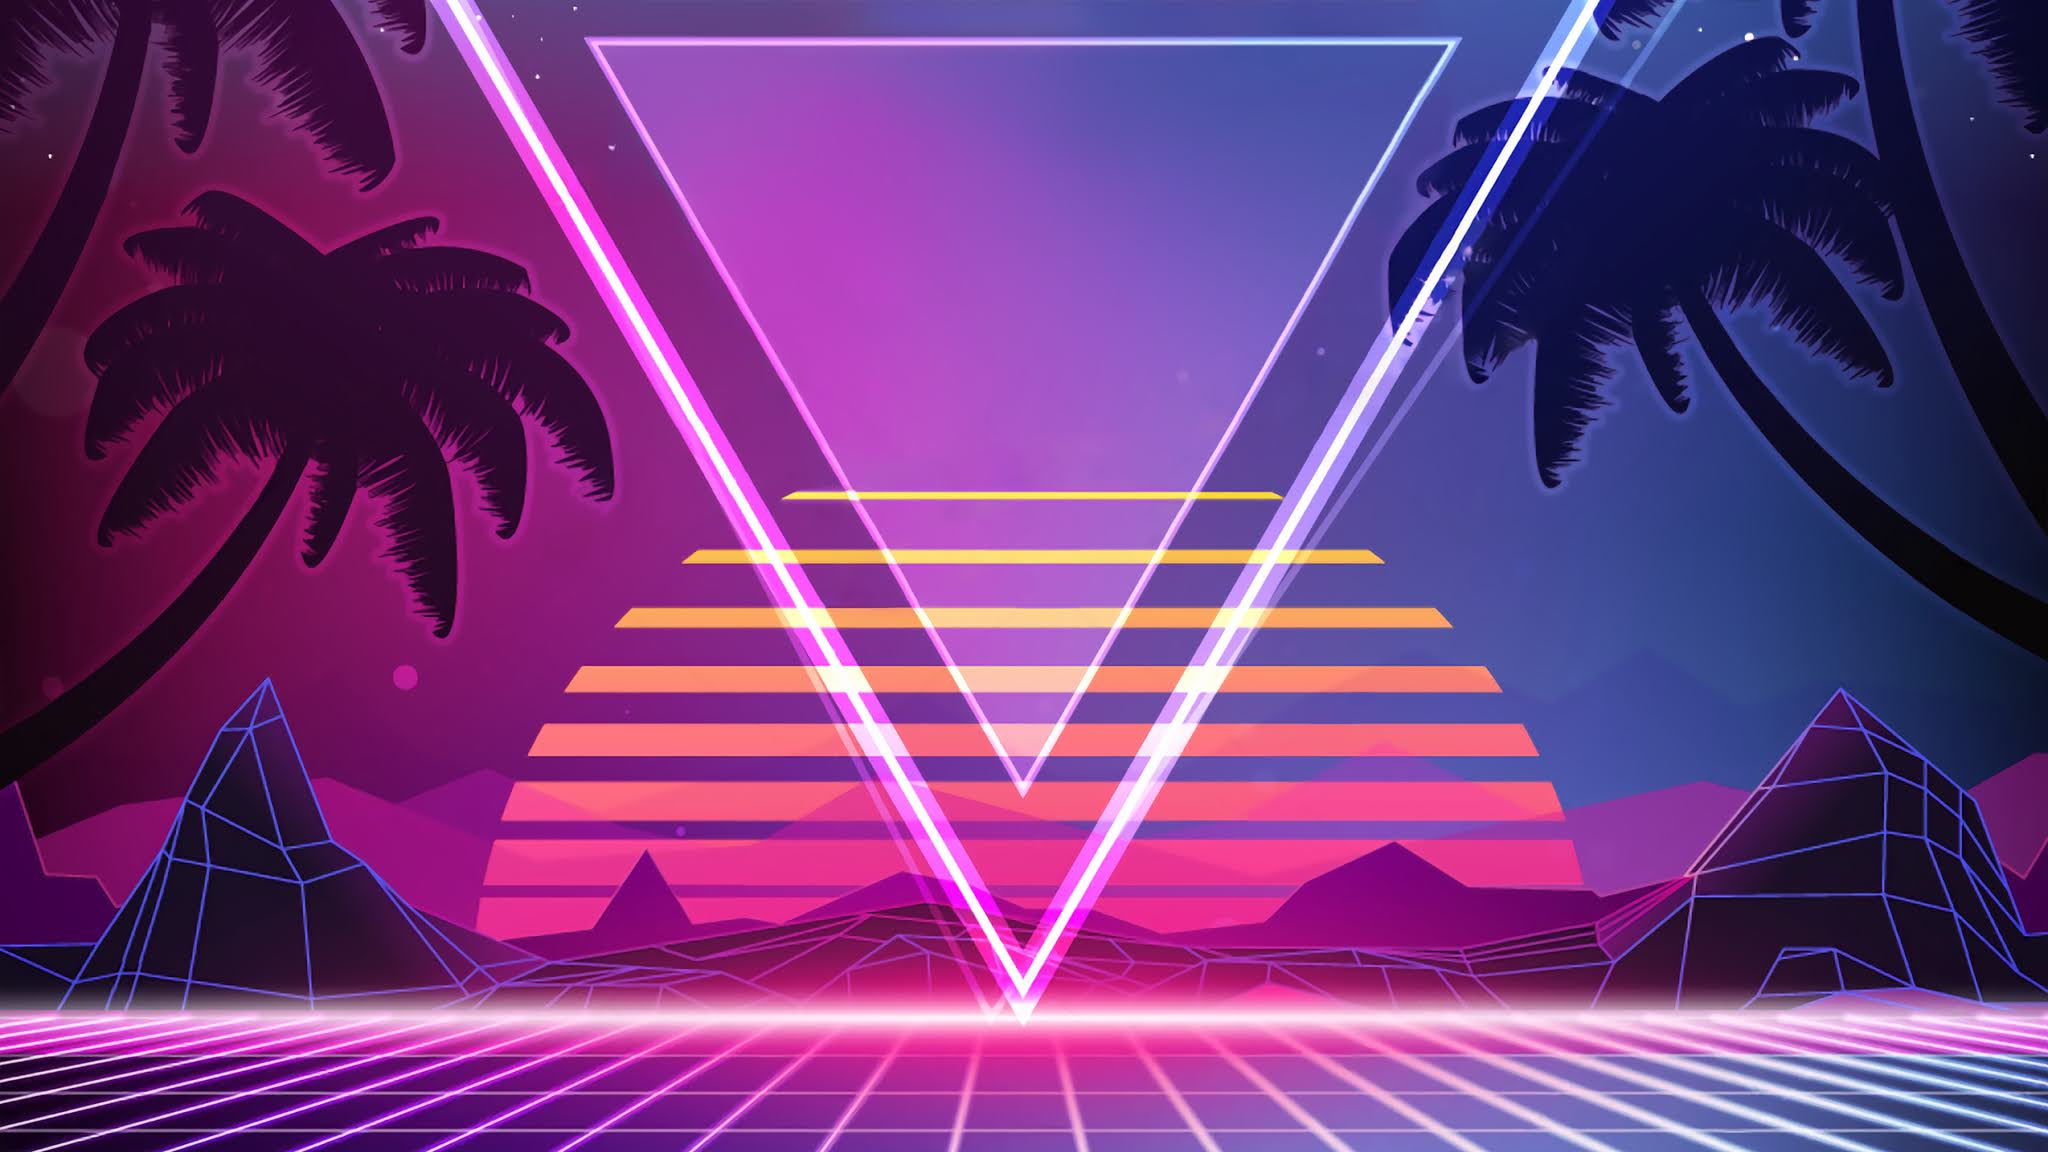 synthwave wallpaper 2560x1440